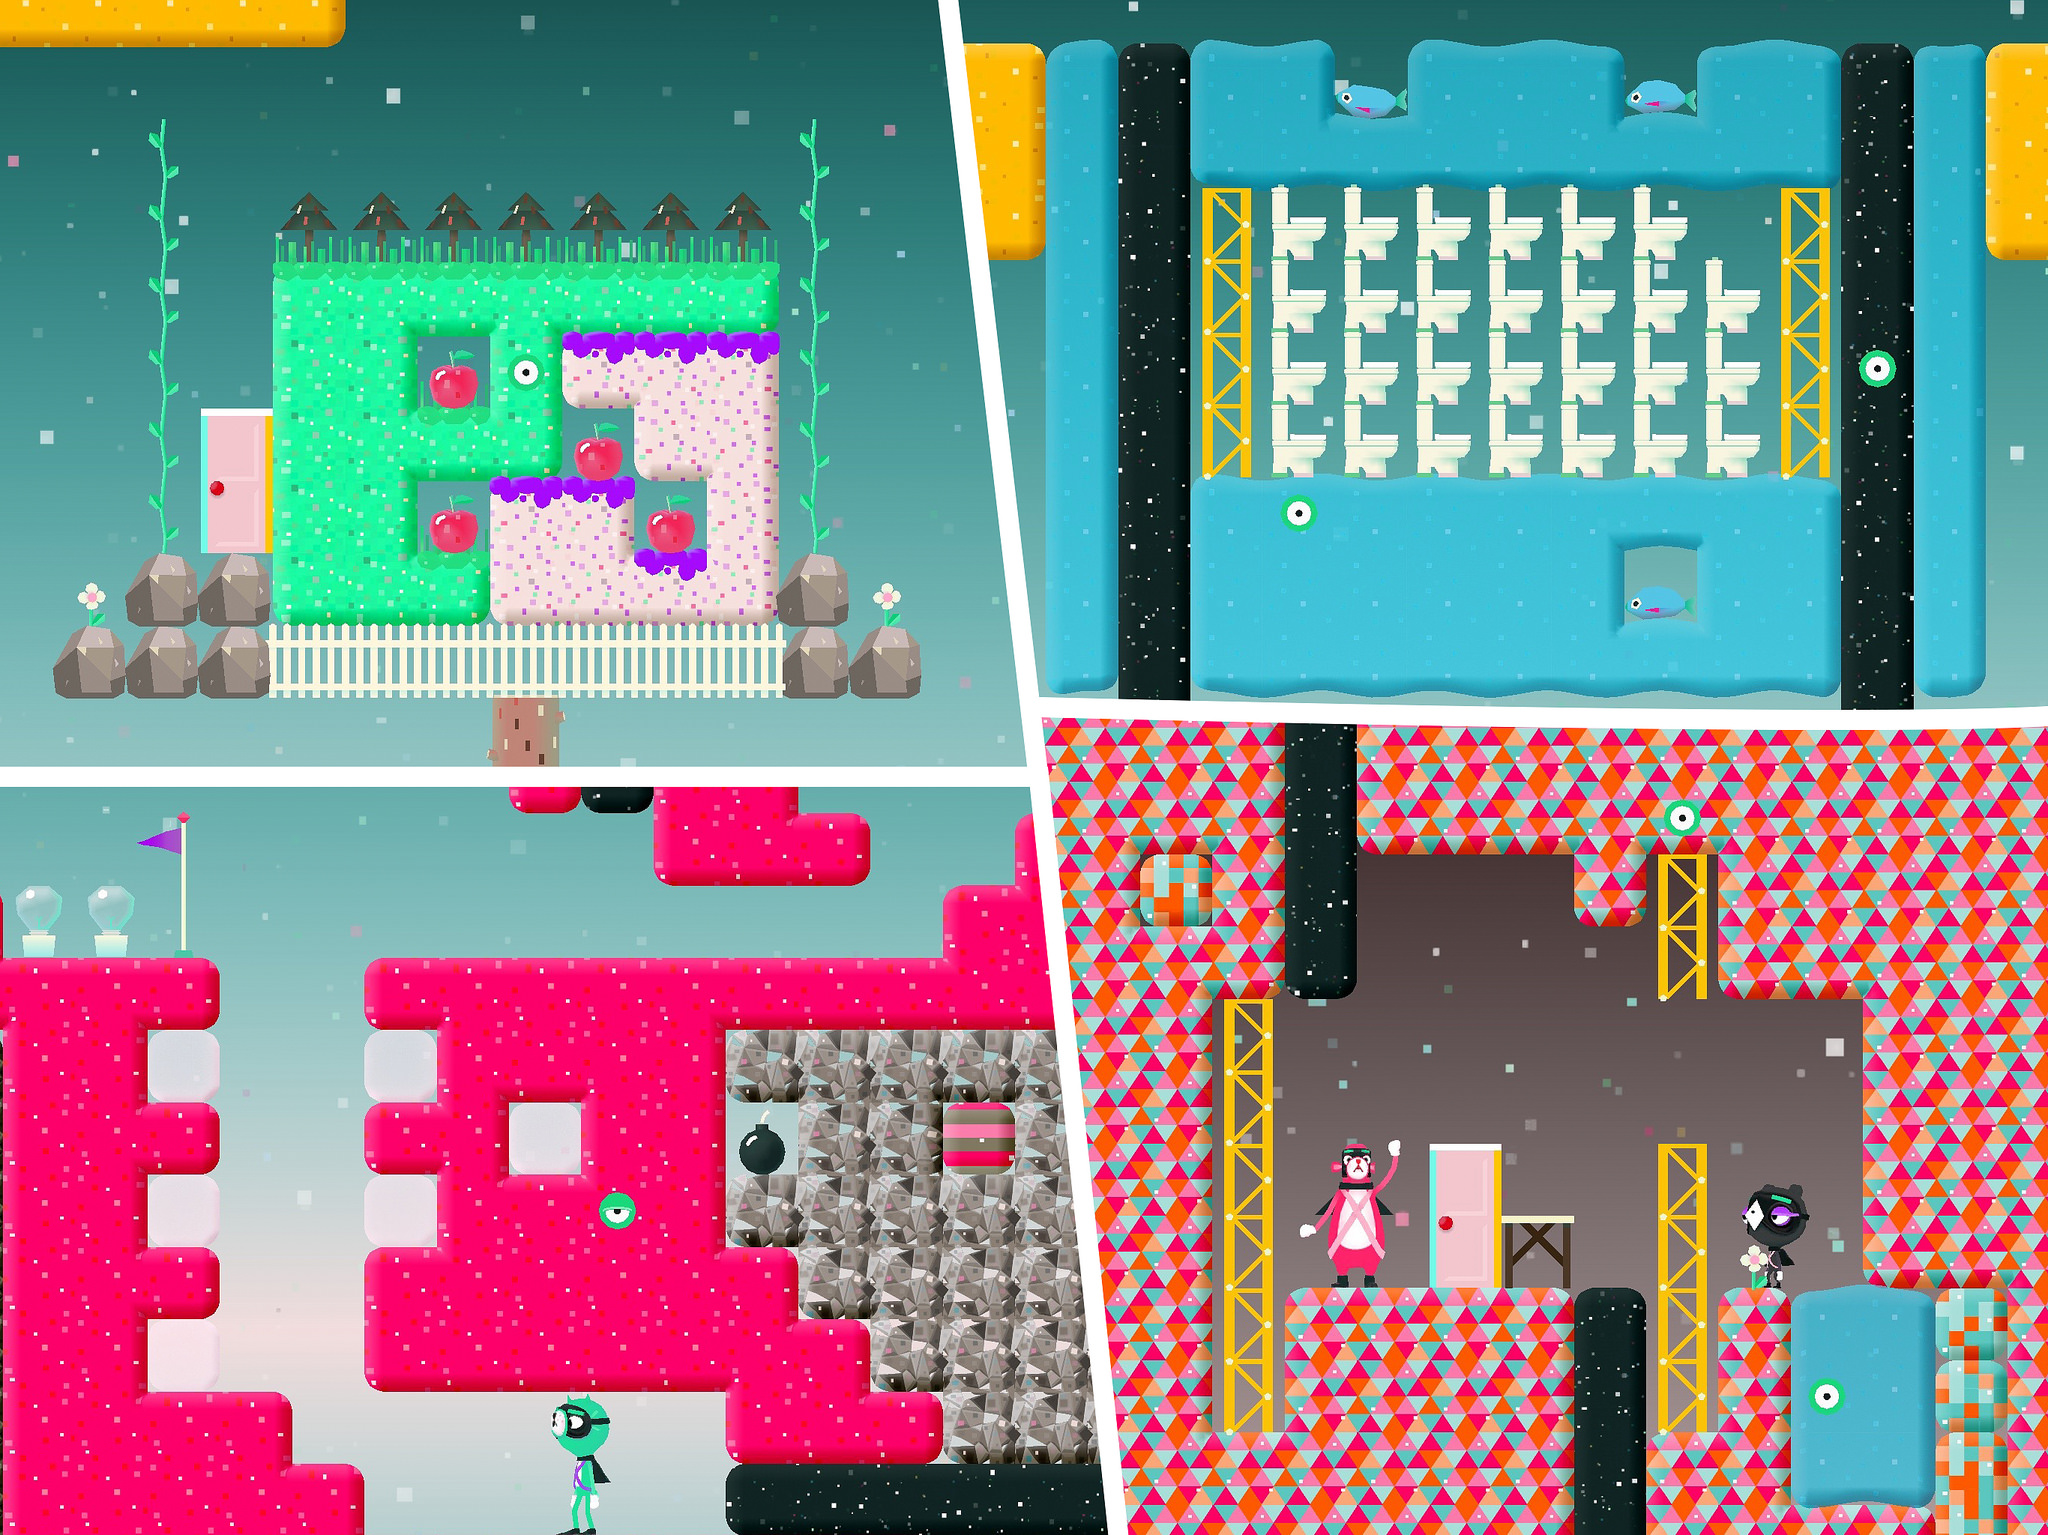 Yes, Toca Blocks has toilets (and something that looks like poo).